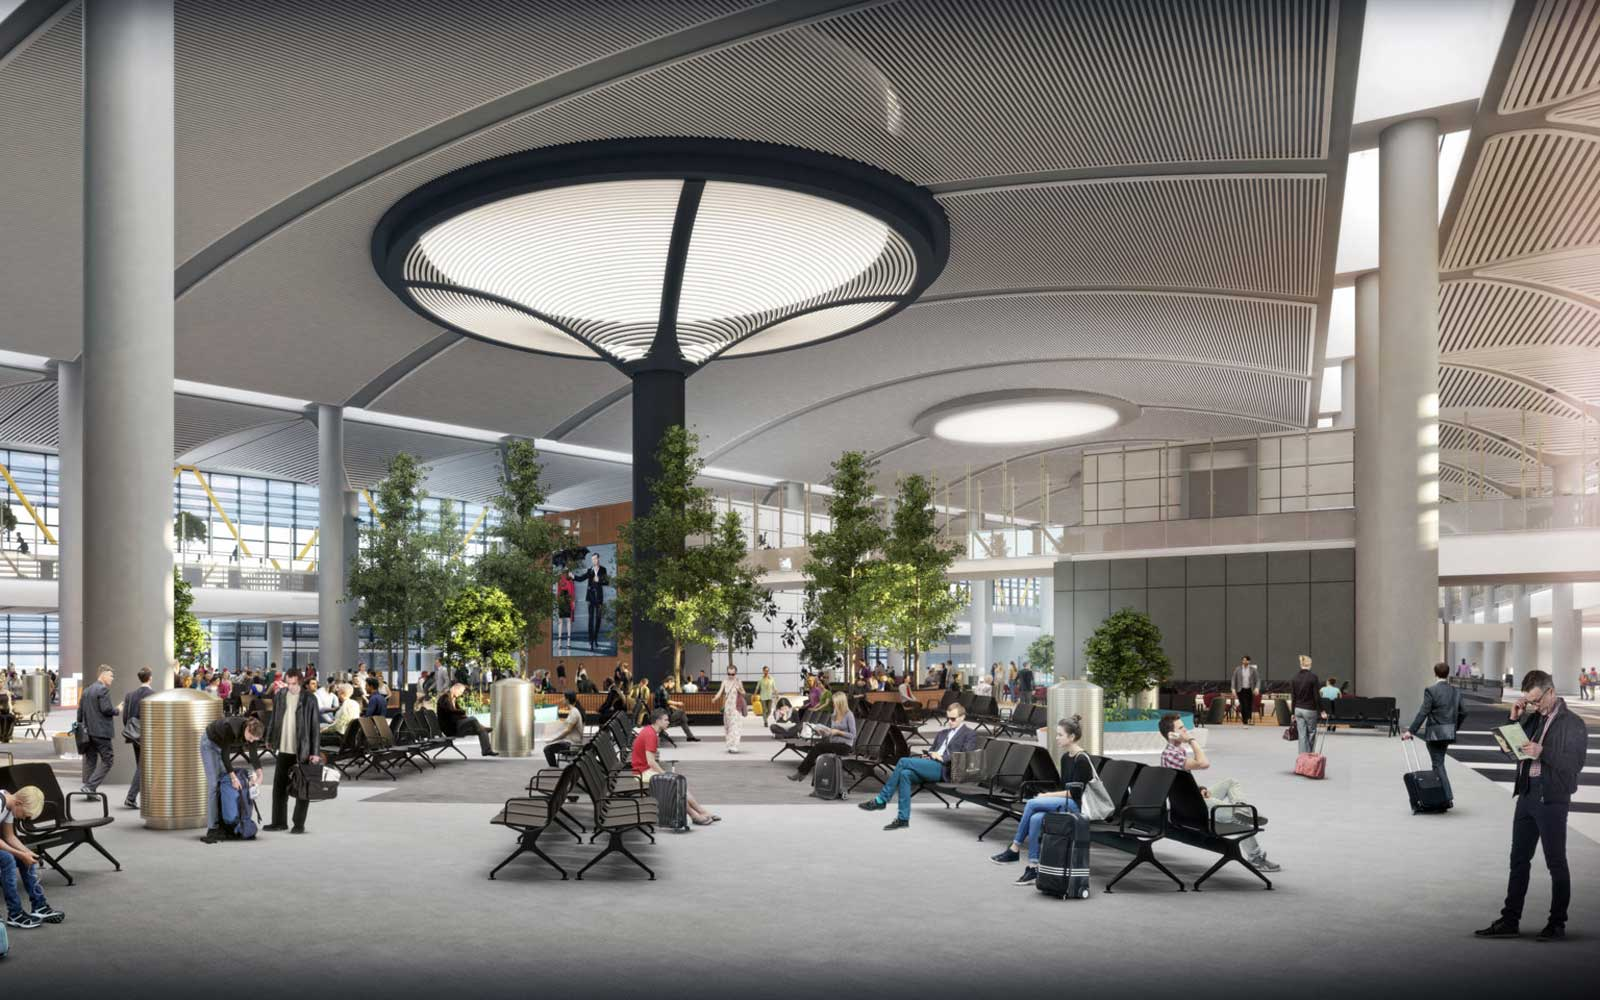 The airport's design draws from traditional mosques, historic structures, and baths in Turkey.